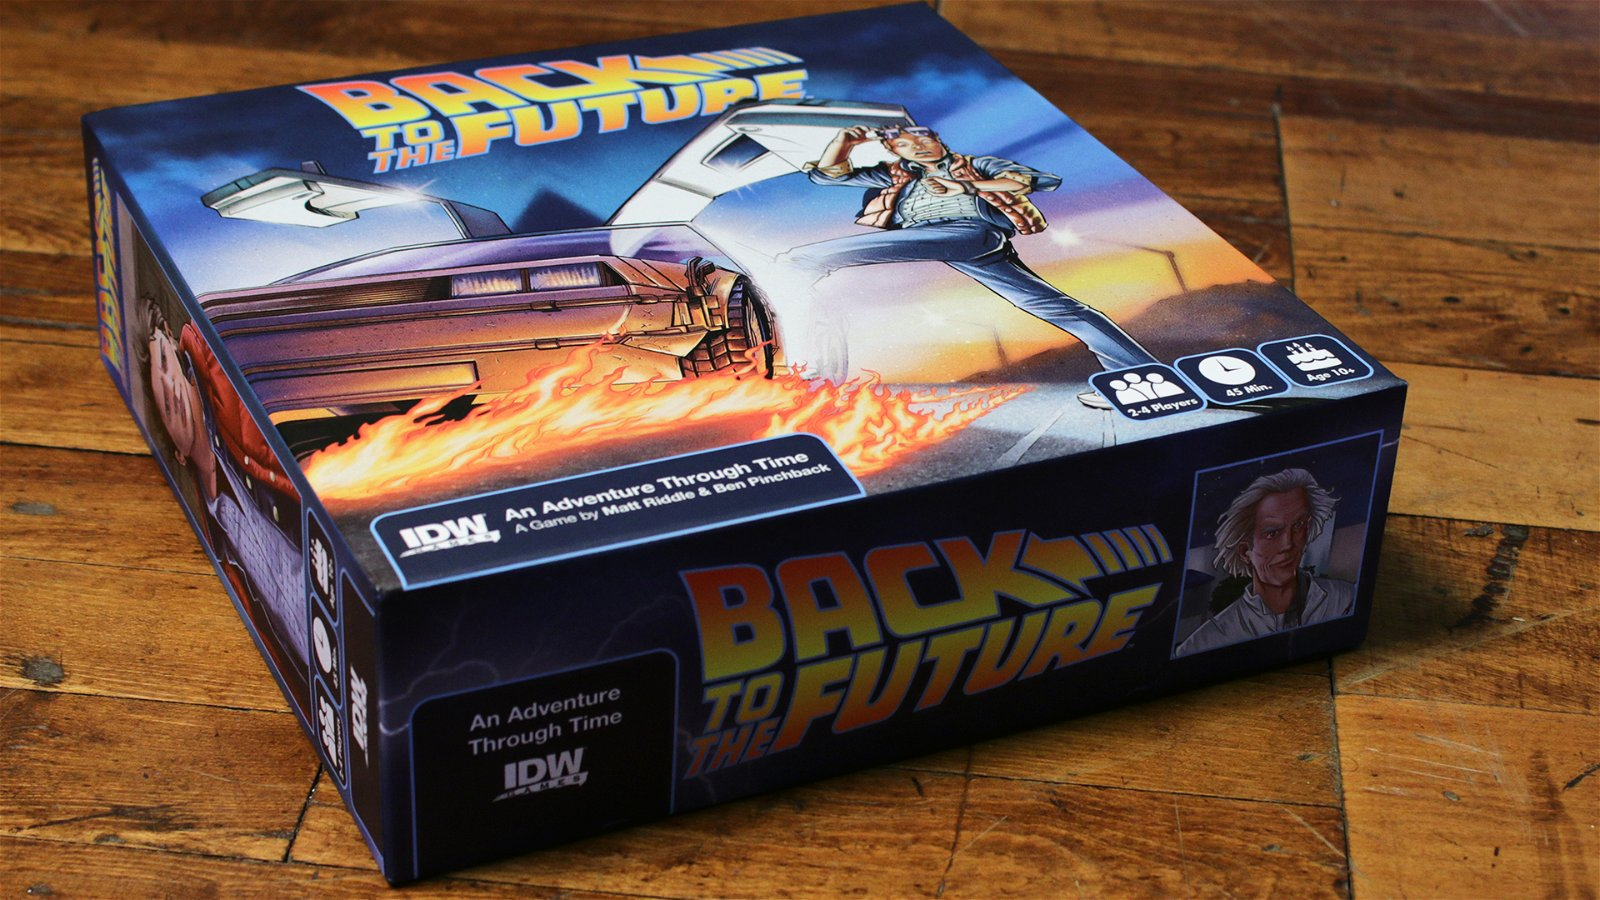 Back To The Future: An Adventure Through Time (Boardgame) Review 4